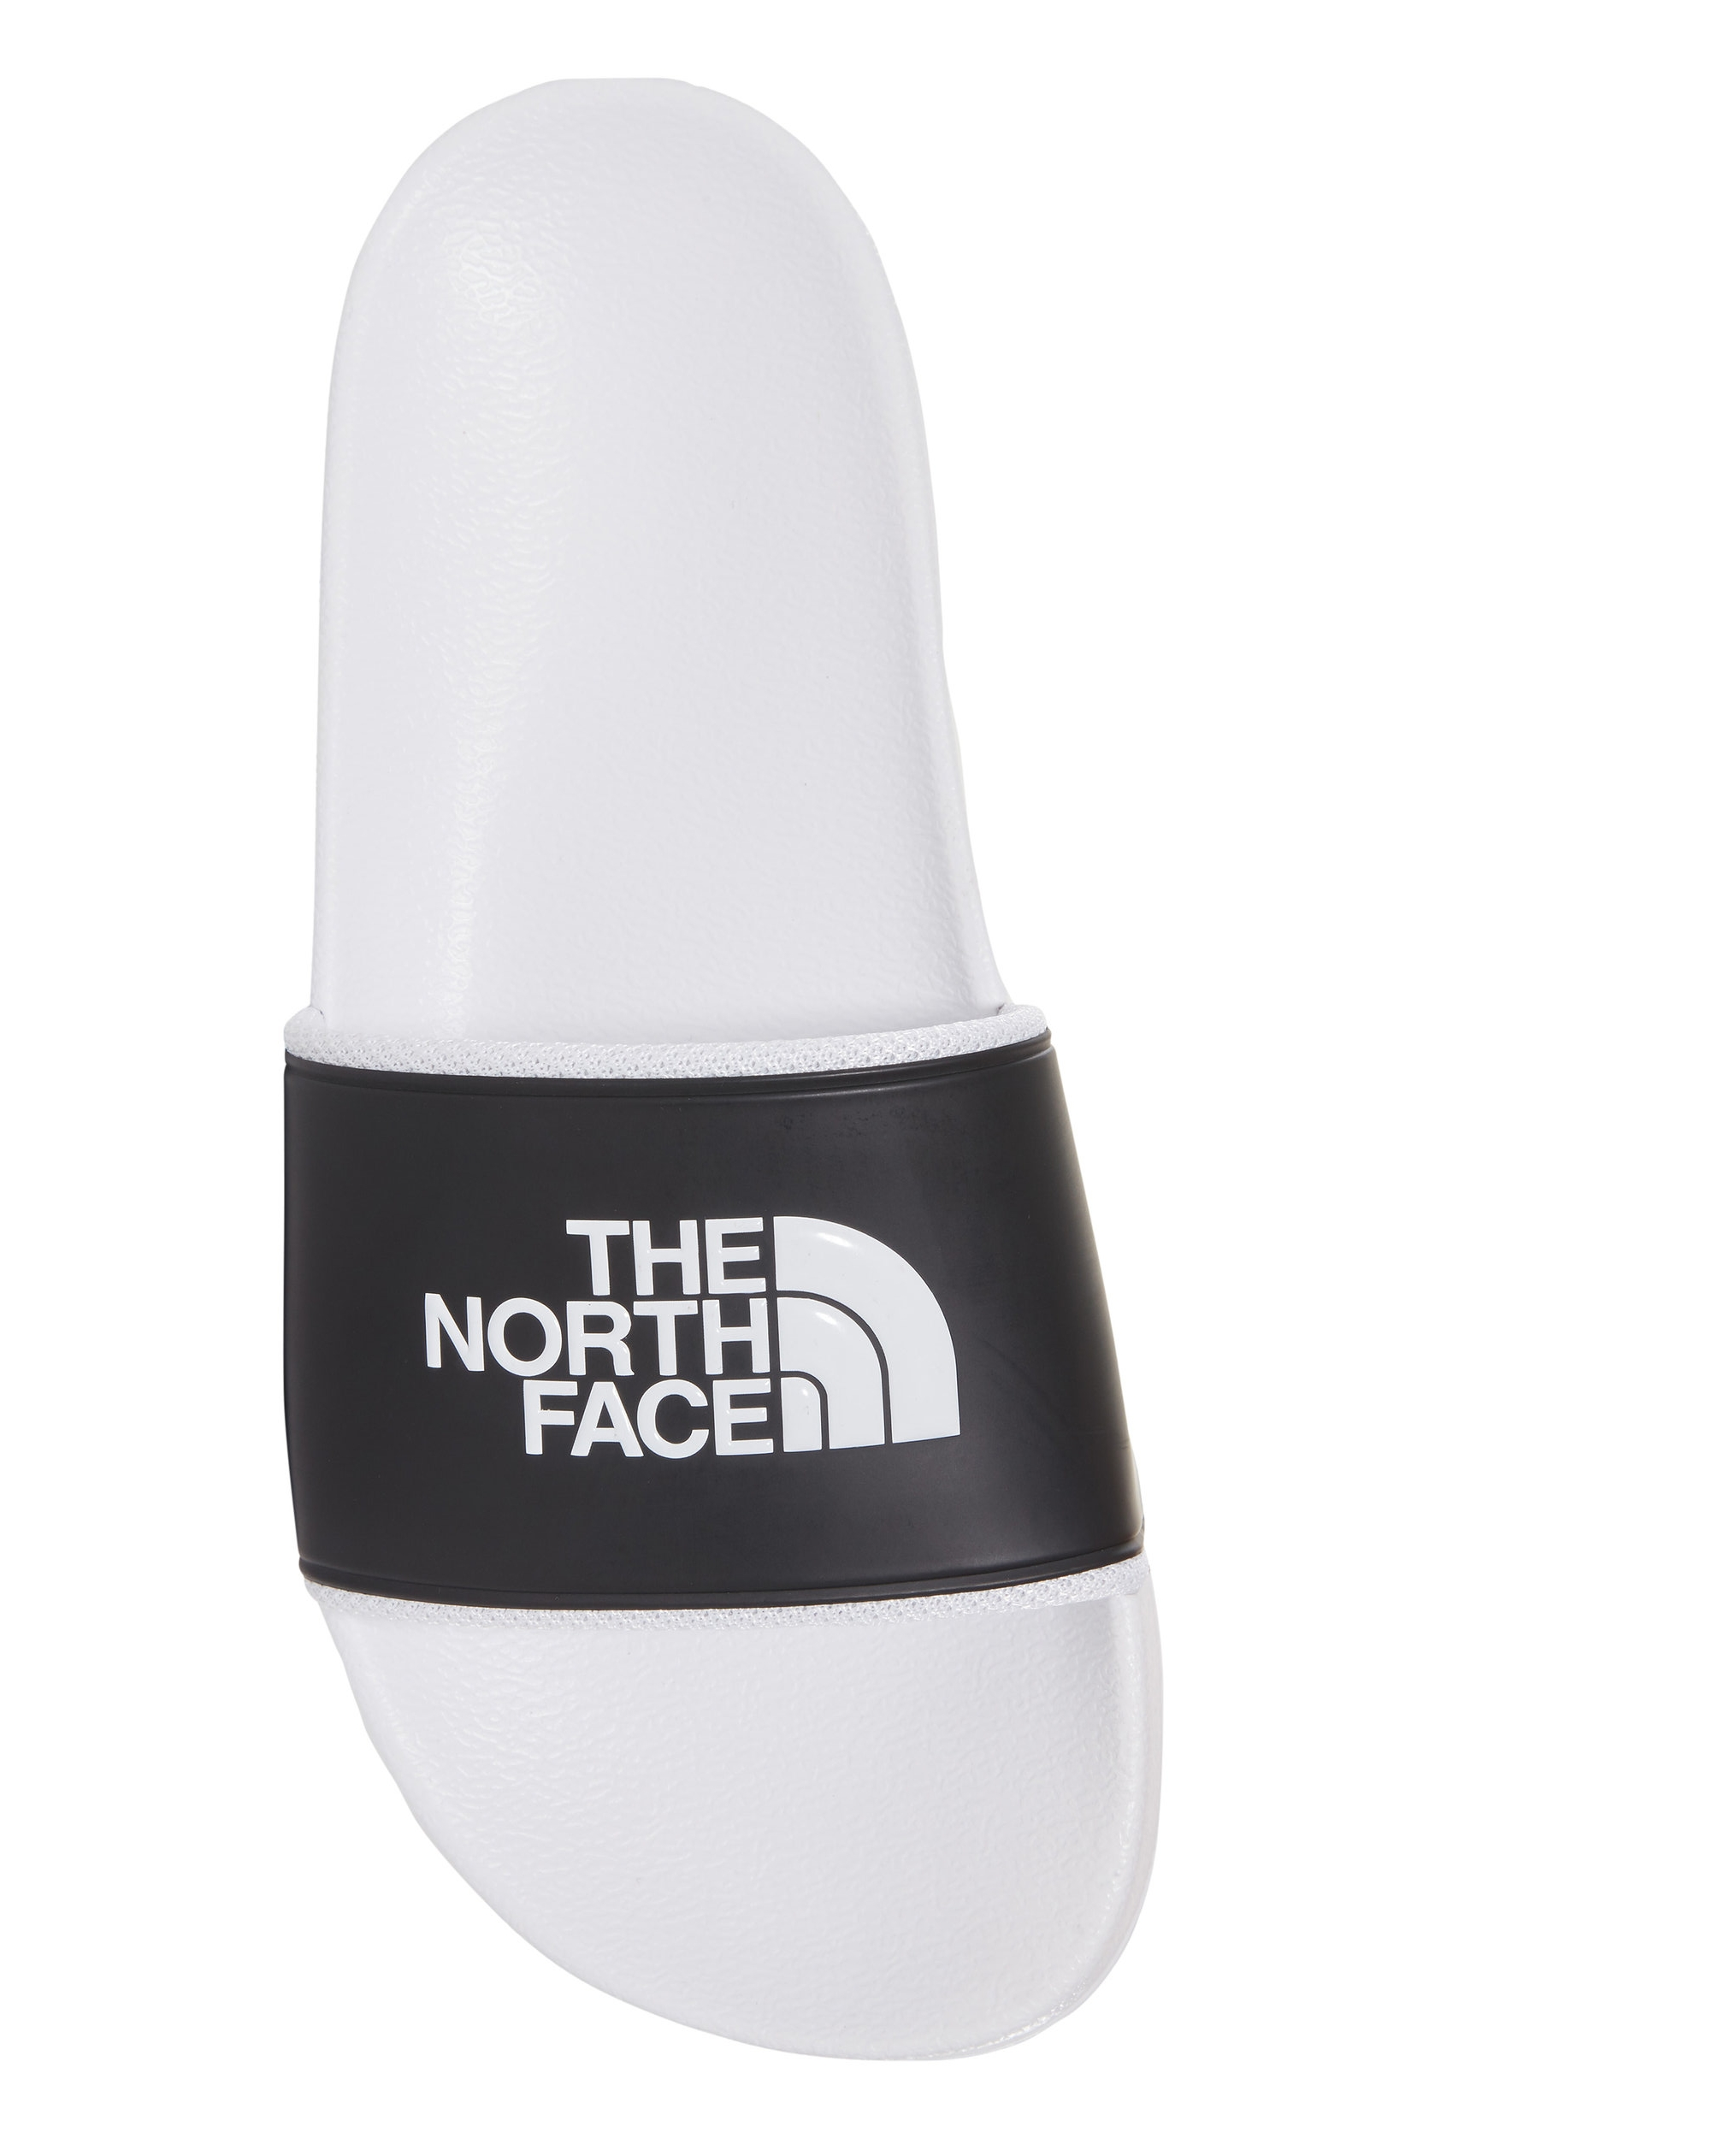 THE NORTH FACE לנשים, 149₪